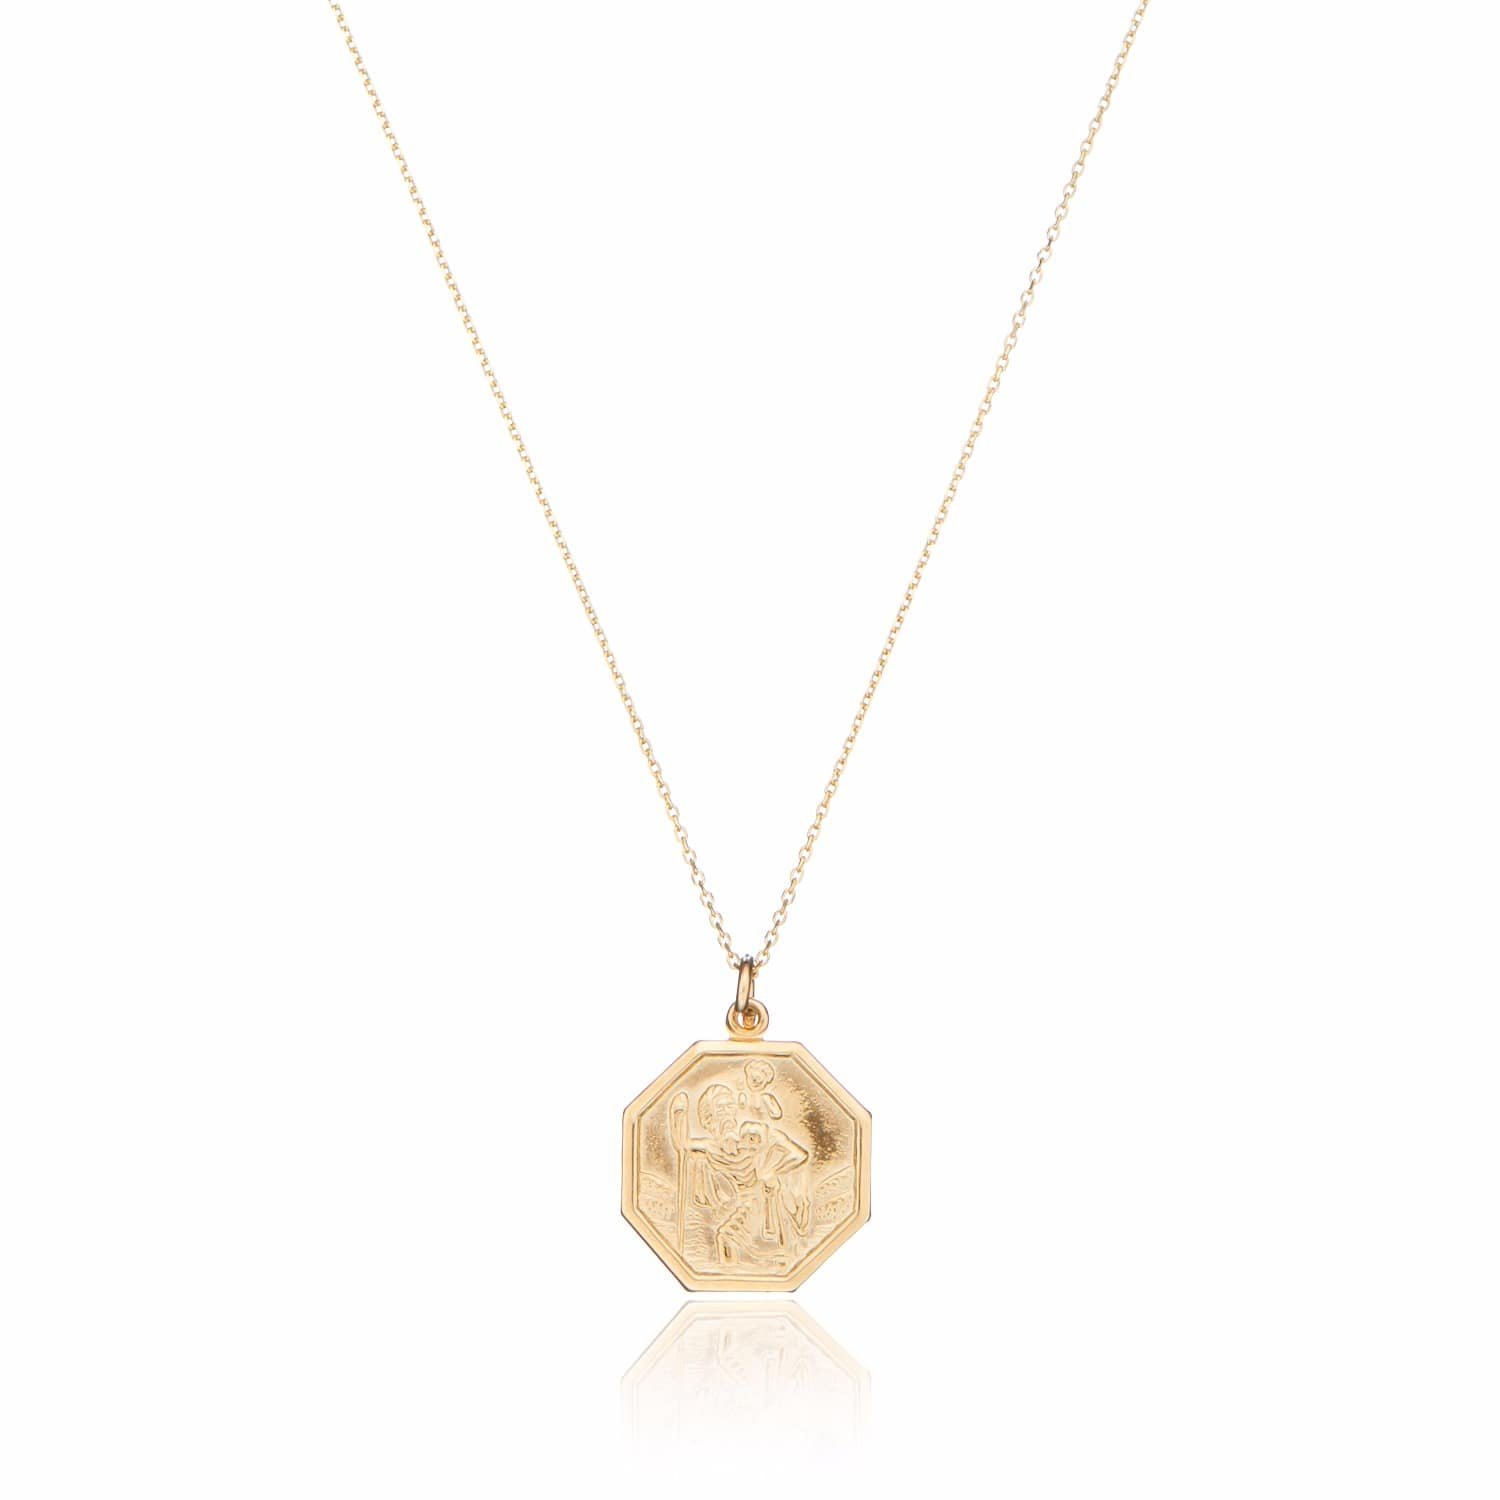 e09860593ec Solid Gold St Christopher Medallion Pendant Necklace | Lily & Roo ...